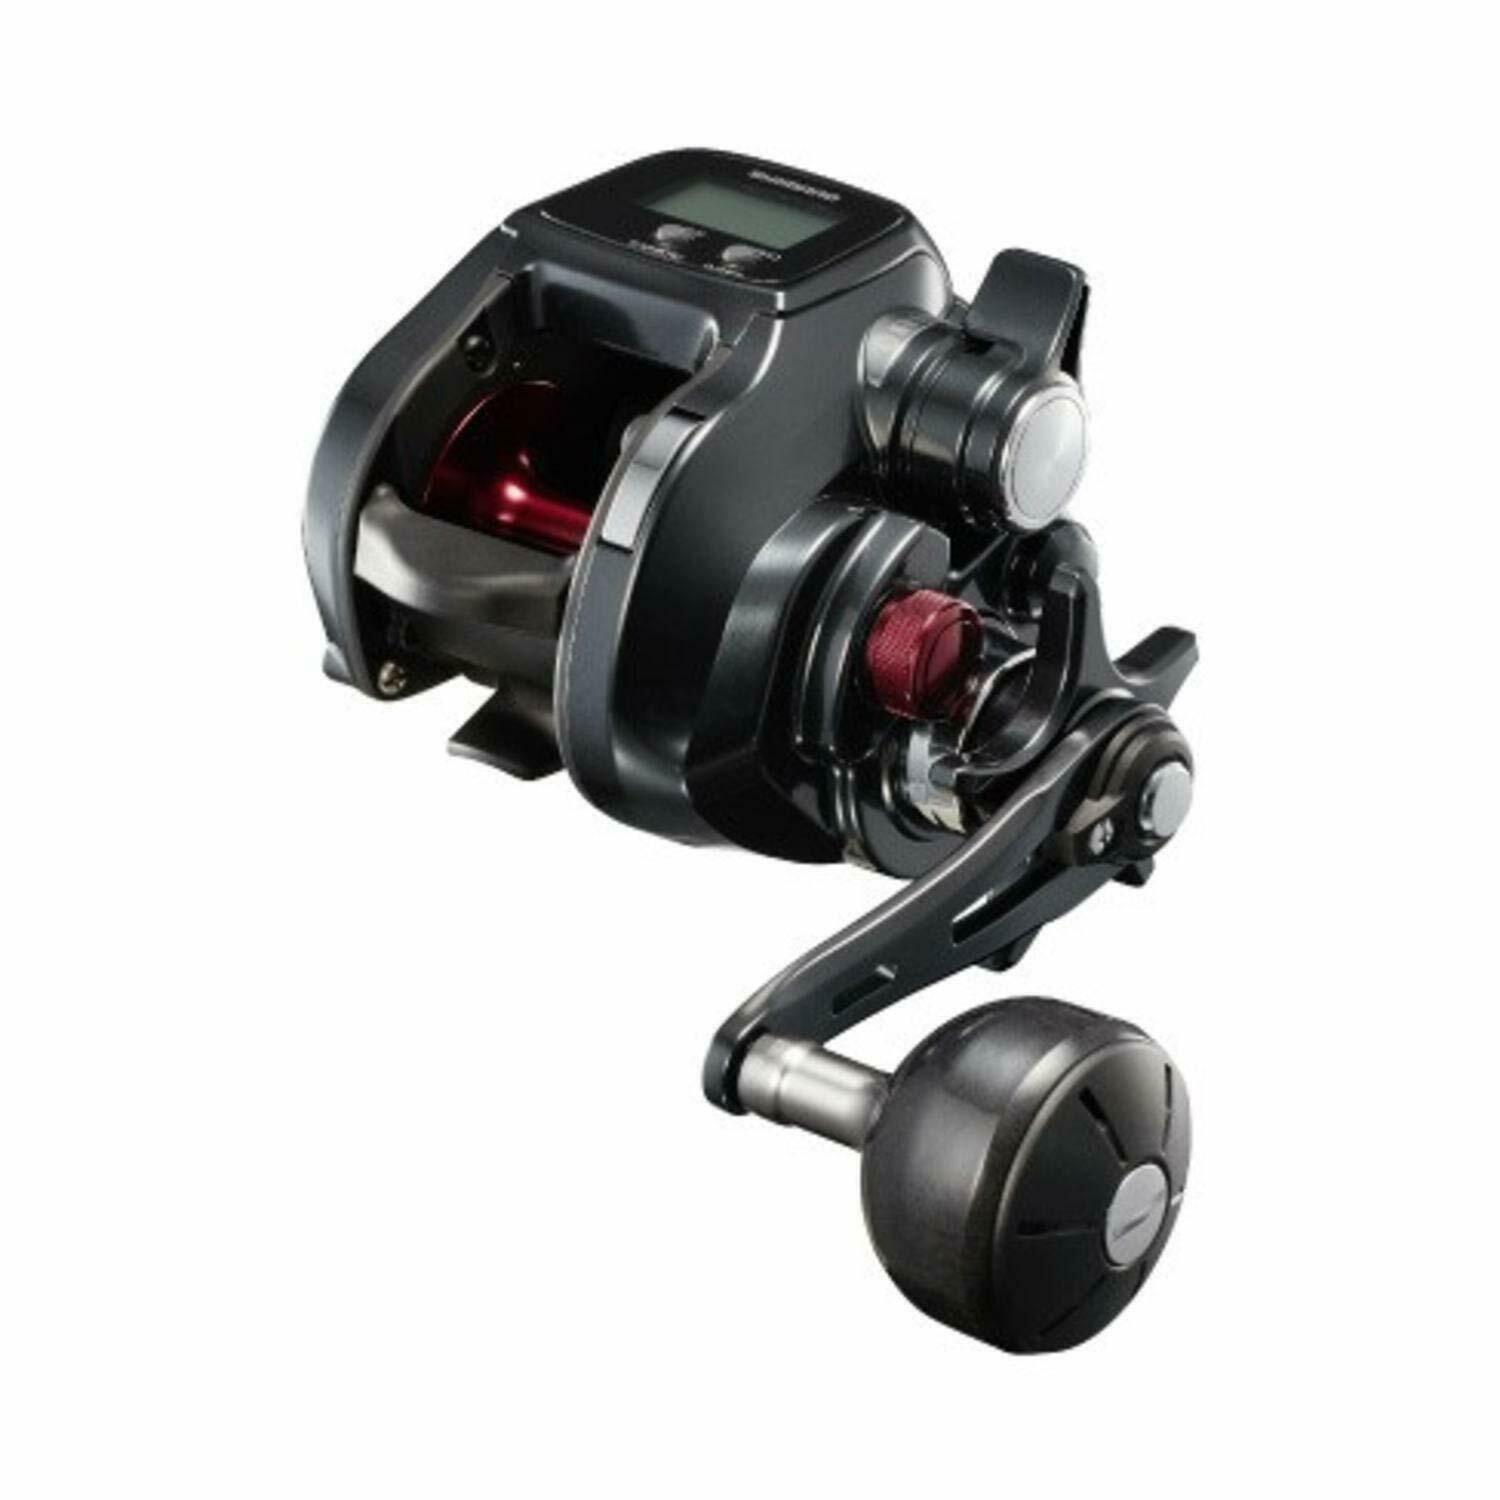 19 Plays 600 Shimano From Stylish anglers EMS